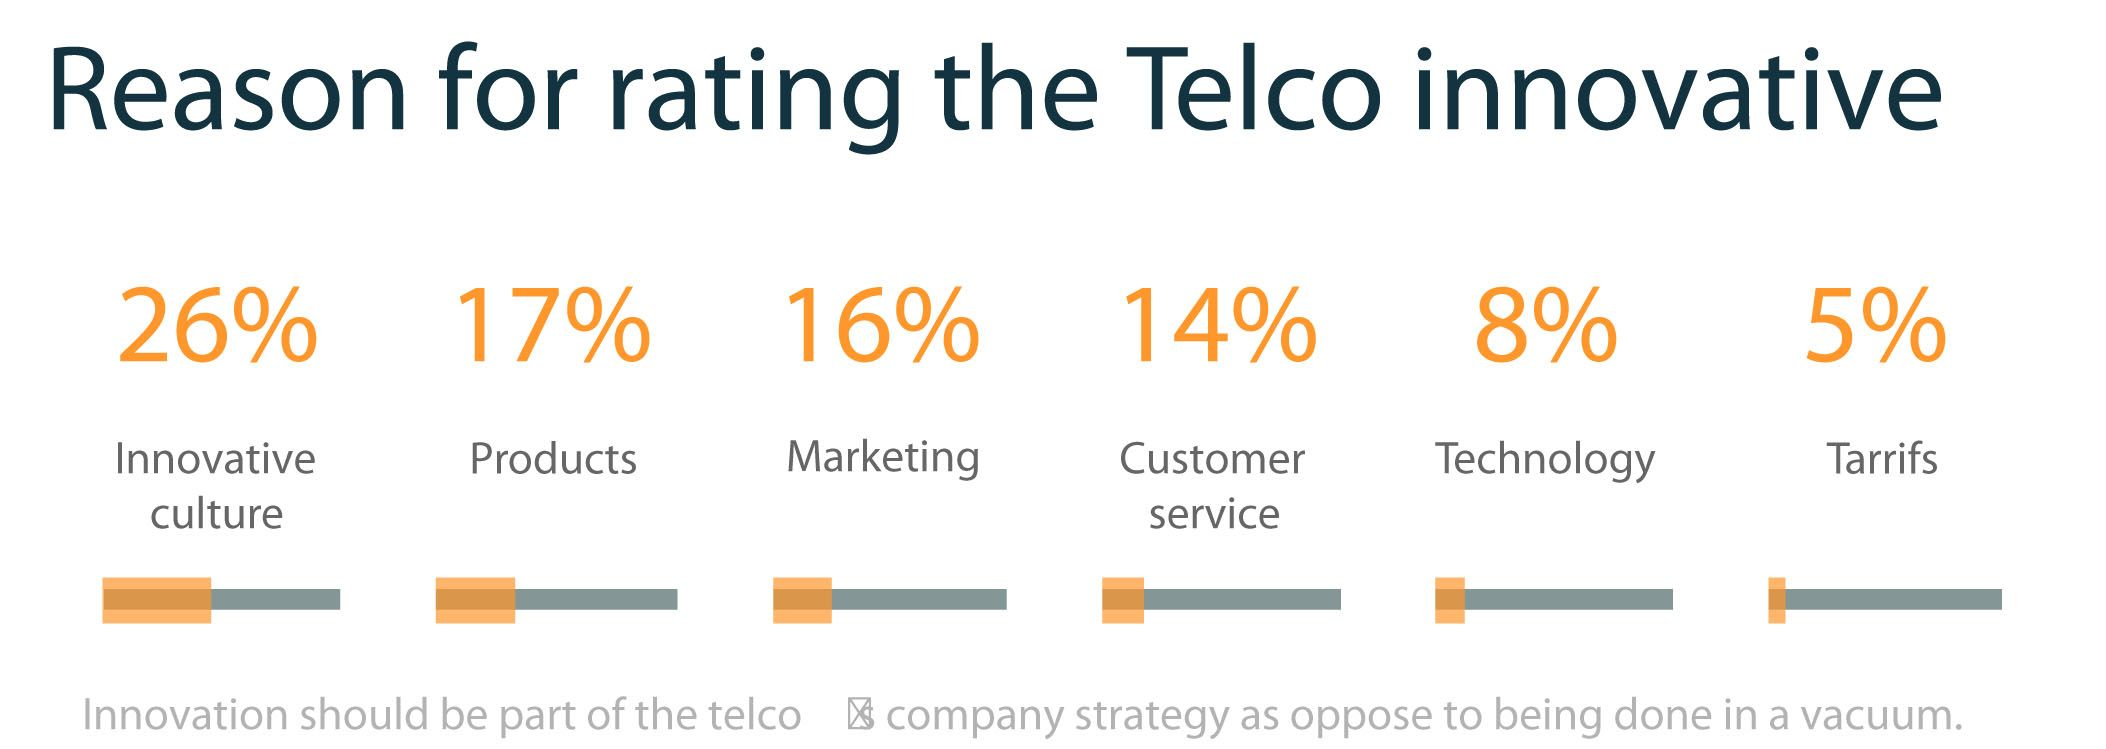 """Our innovation study respondents rated """"innovative culture"""" as the no.1 reason to rate a telco innovative. What are your views on these top 5 reasons?"""